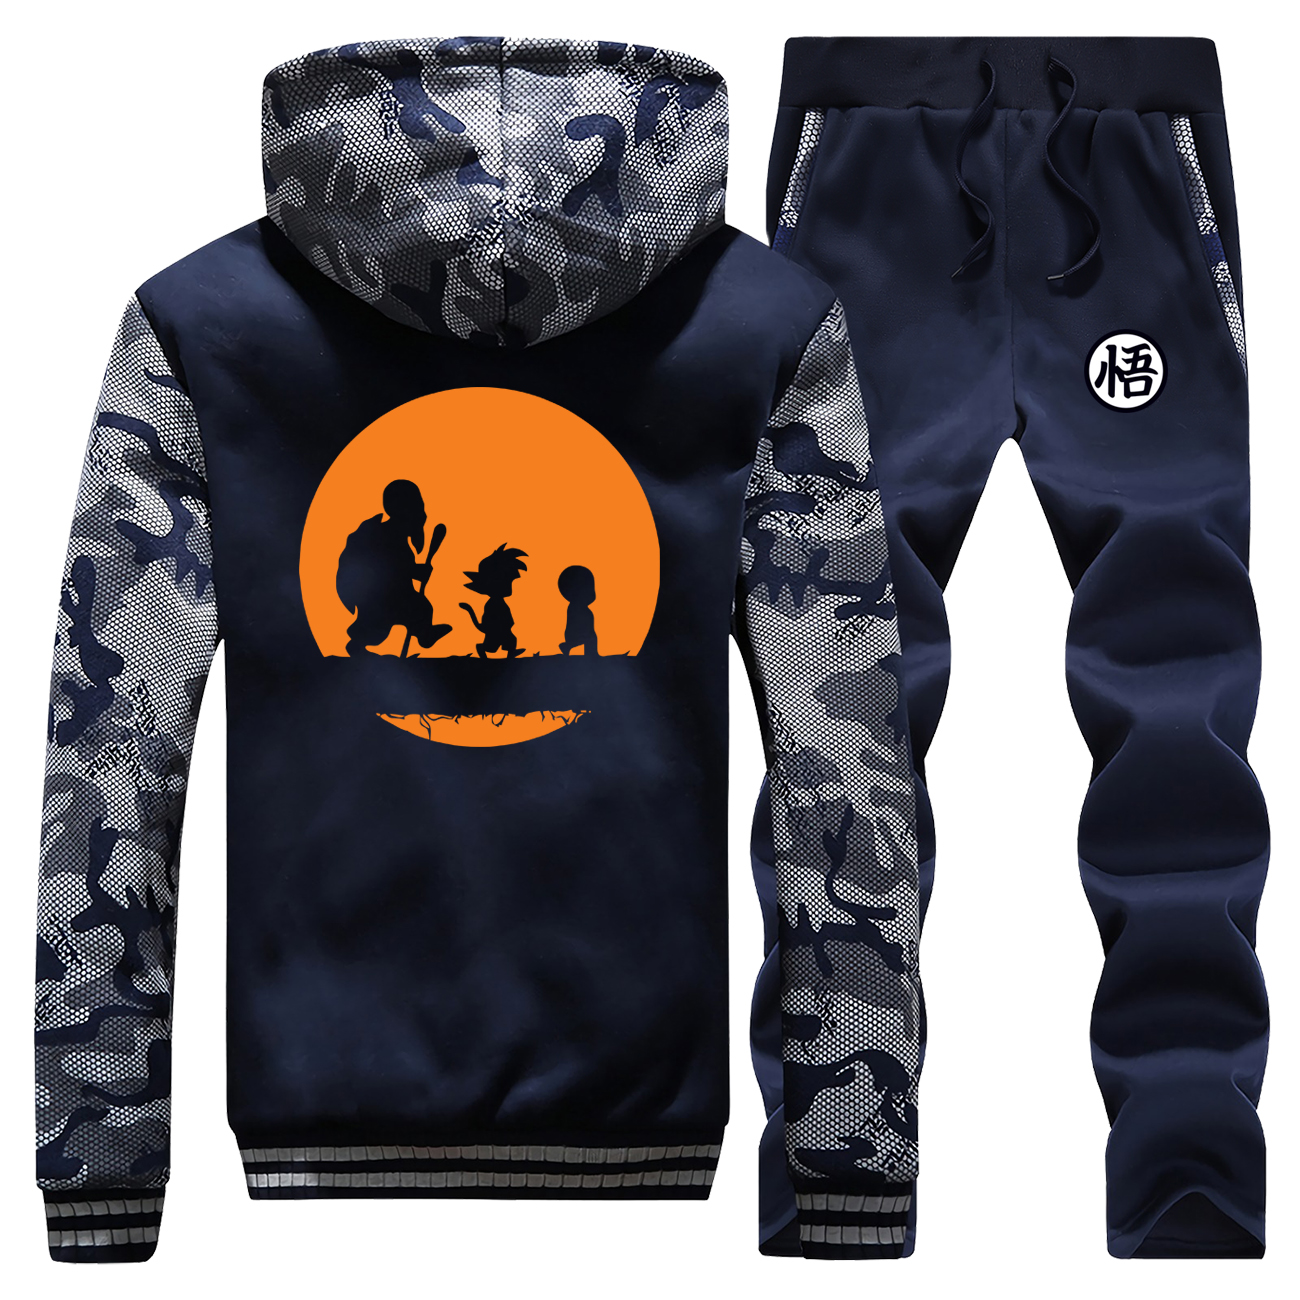 Anime Dragon Ball Z Men Hoodie Sweatshirt Master Roshi Goku Print Coat Zip Winter Warm Jacket+Pants 2 Piece Sets Mens Tracksuit